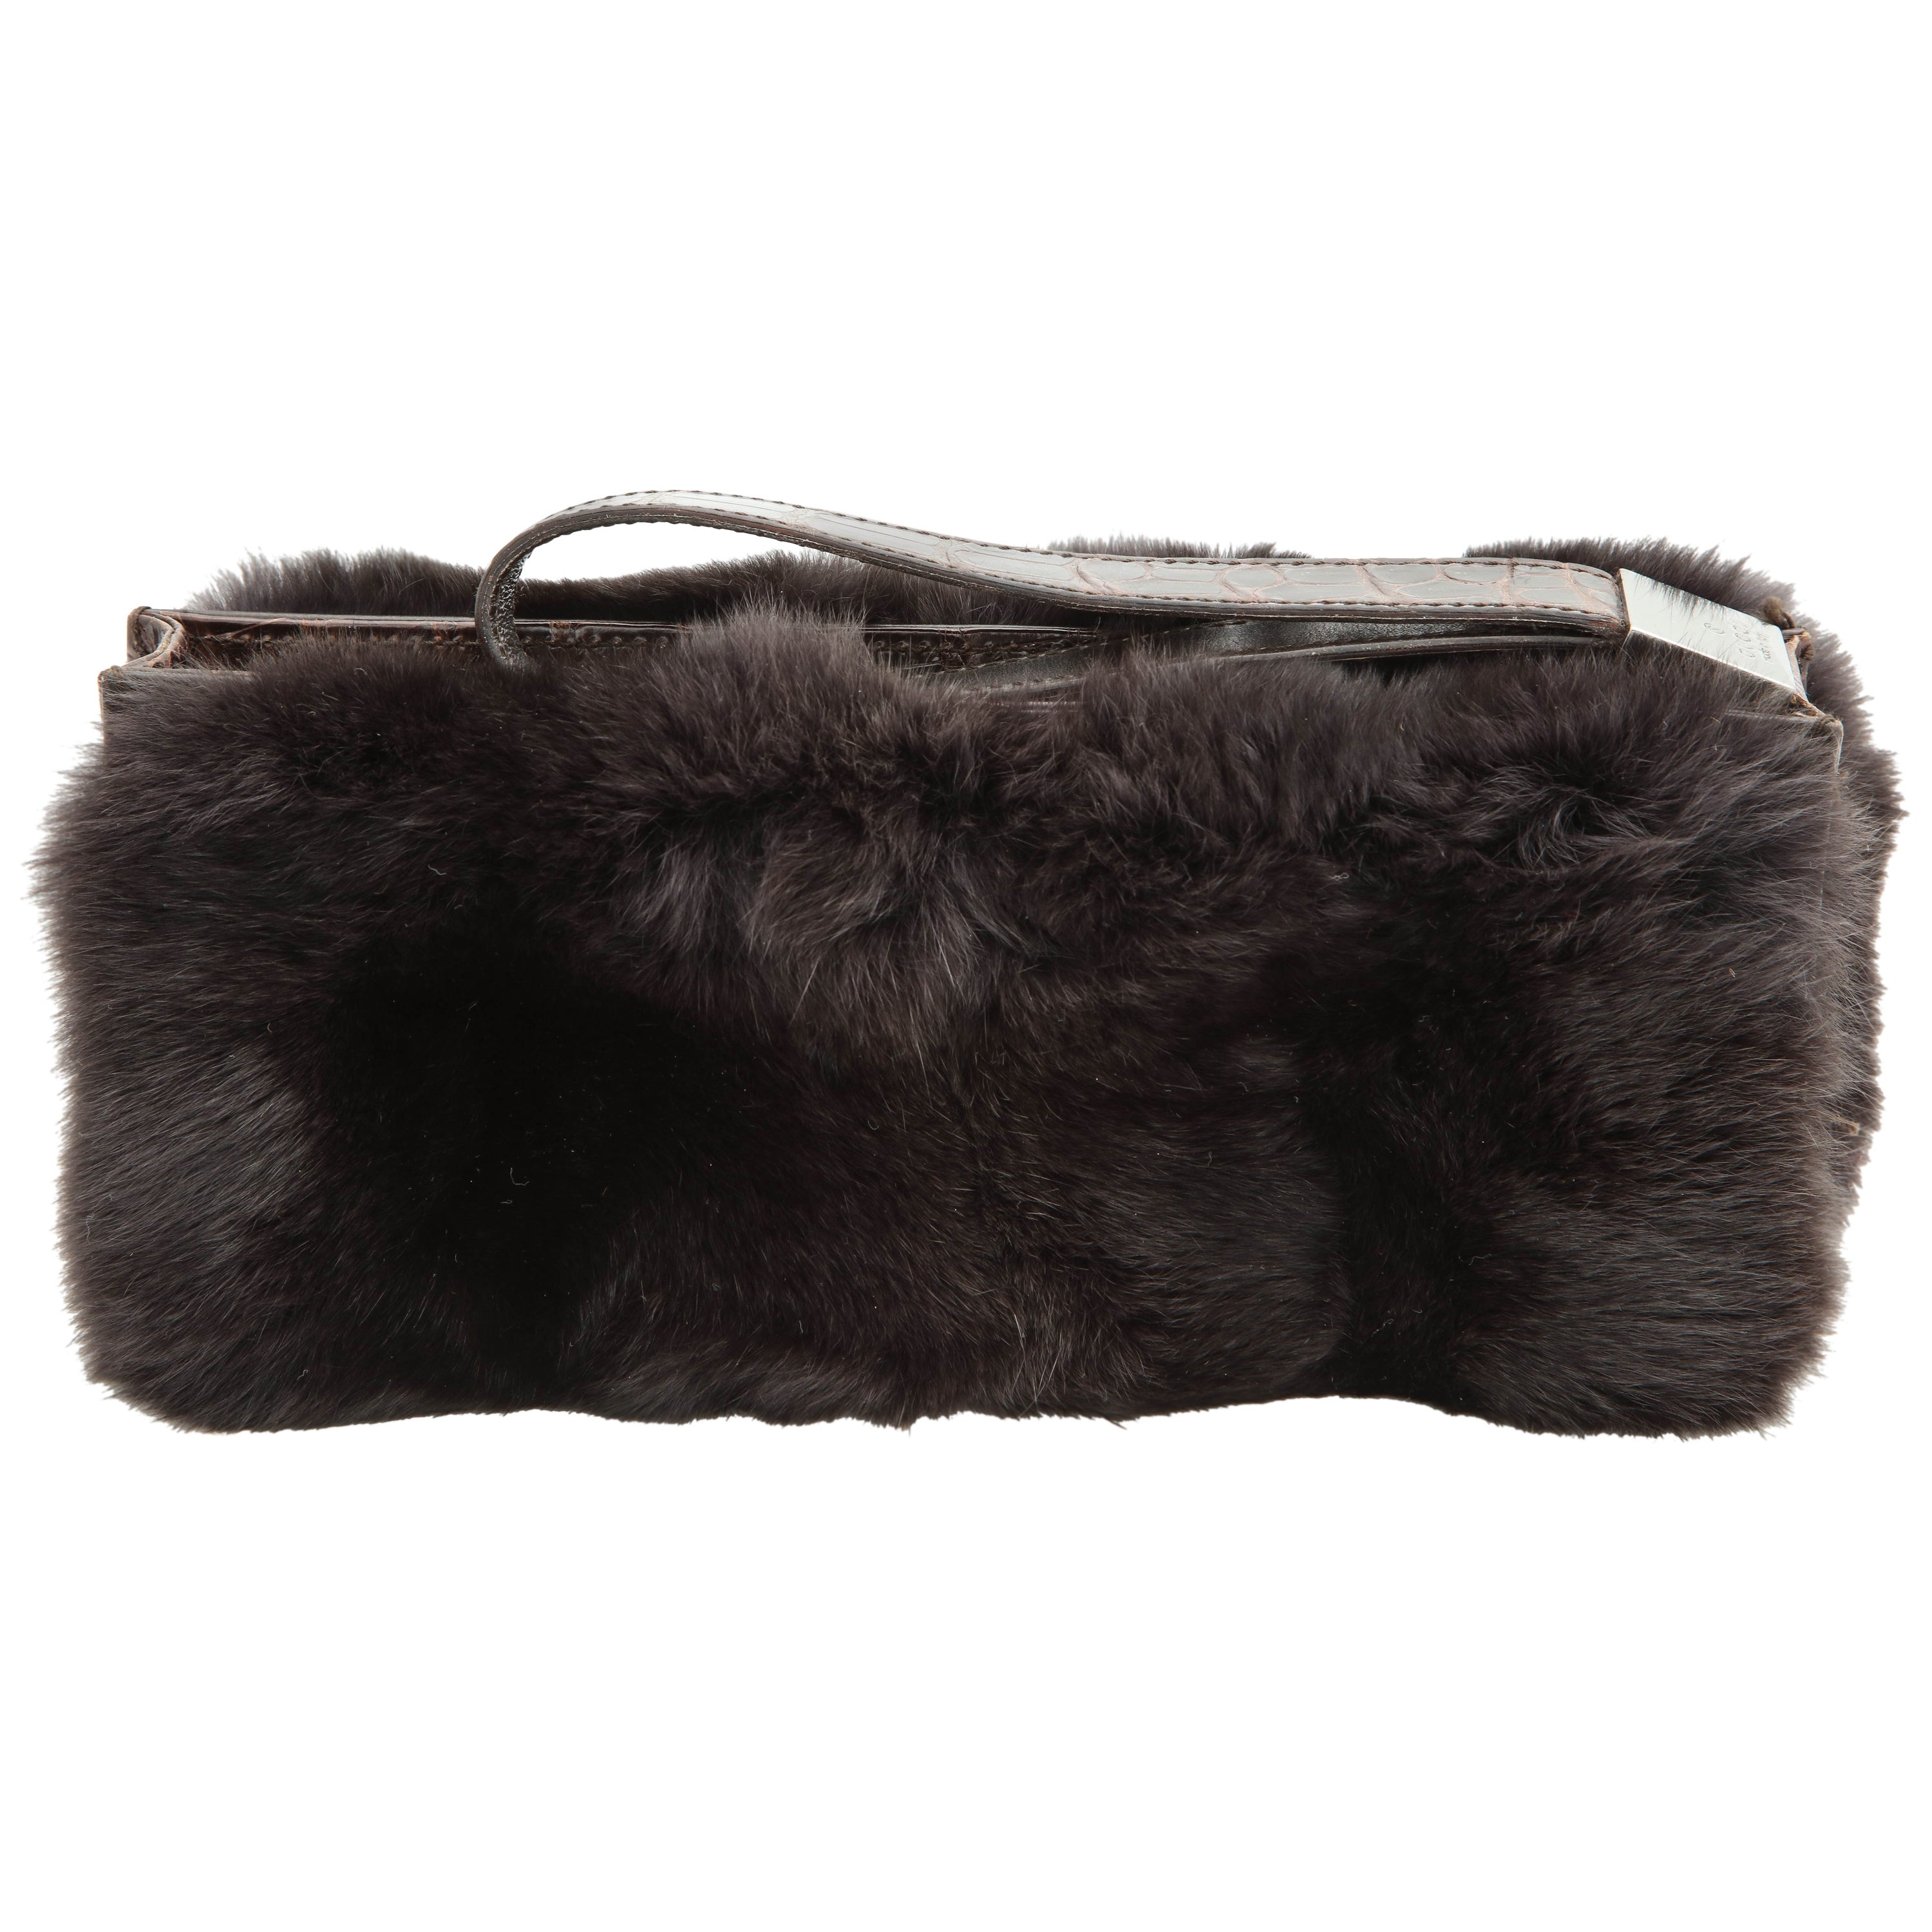 552ab4af406f Gucci Fur and Crocodile Clutch Bag For Sale at 1stdibs